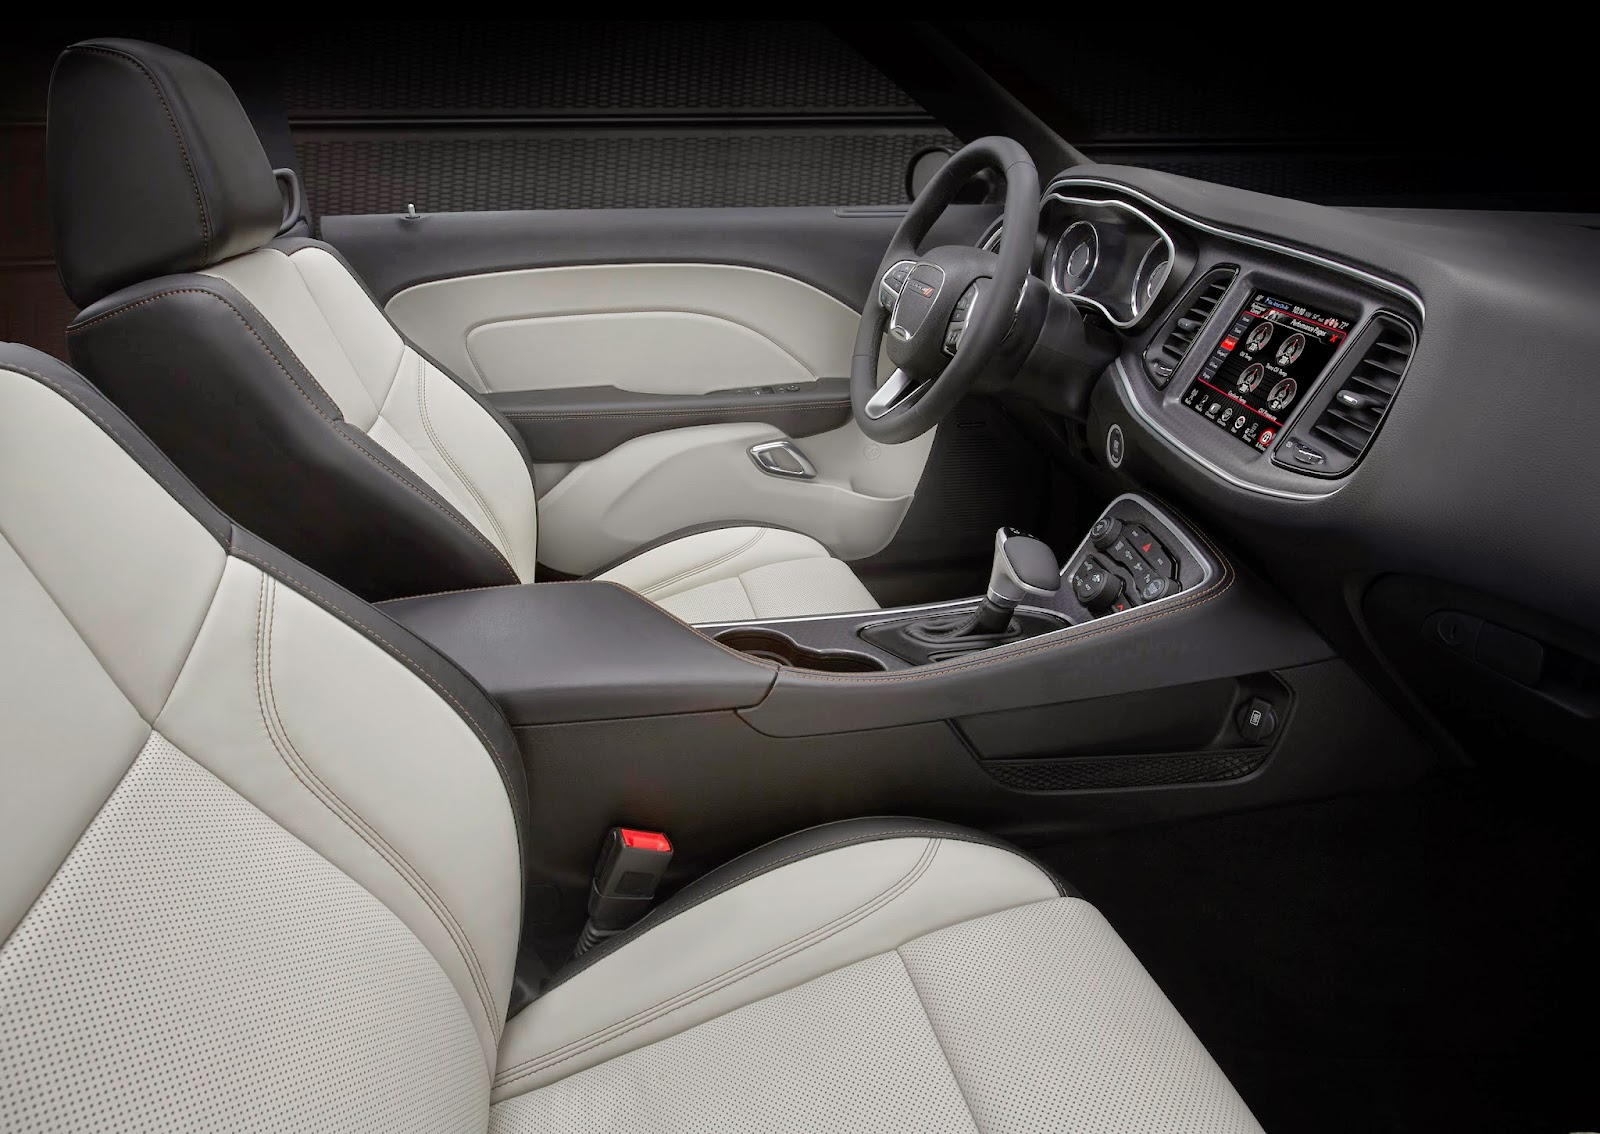 Interior view of 2015 Dodge Challenger R/T